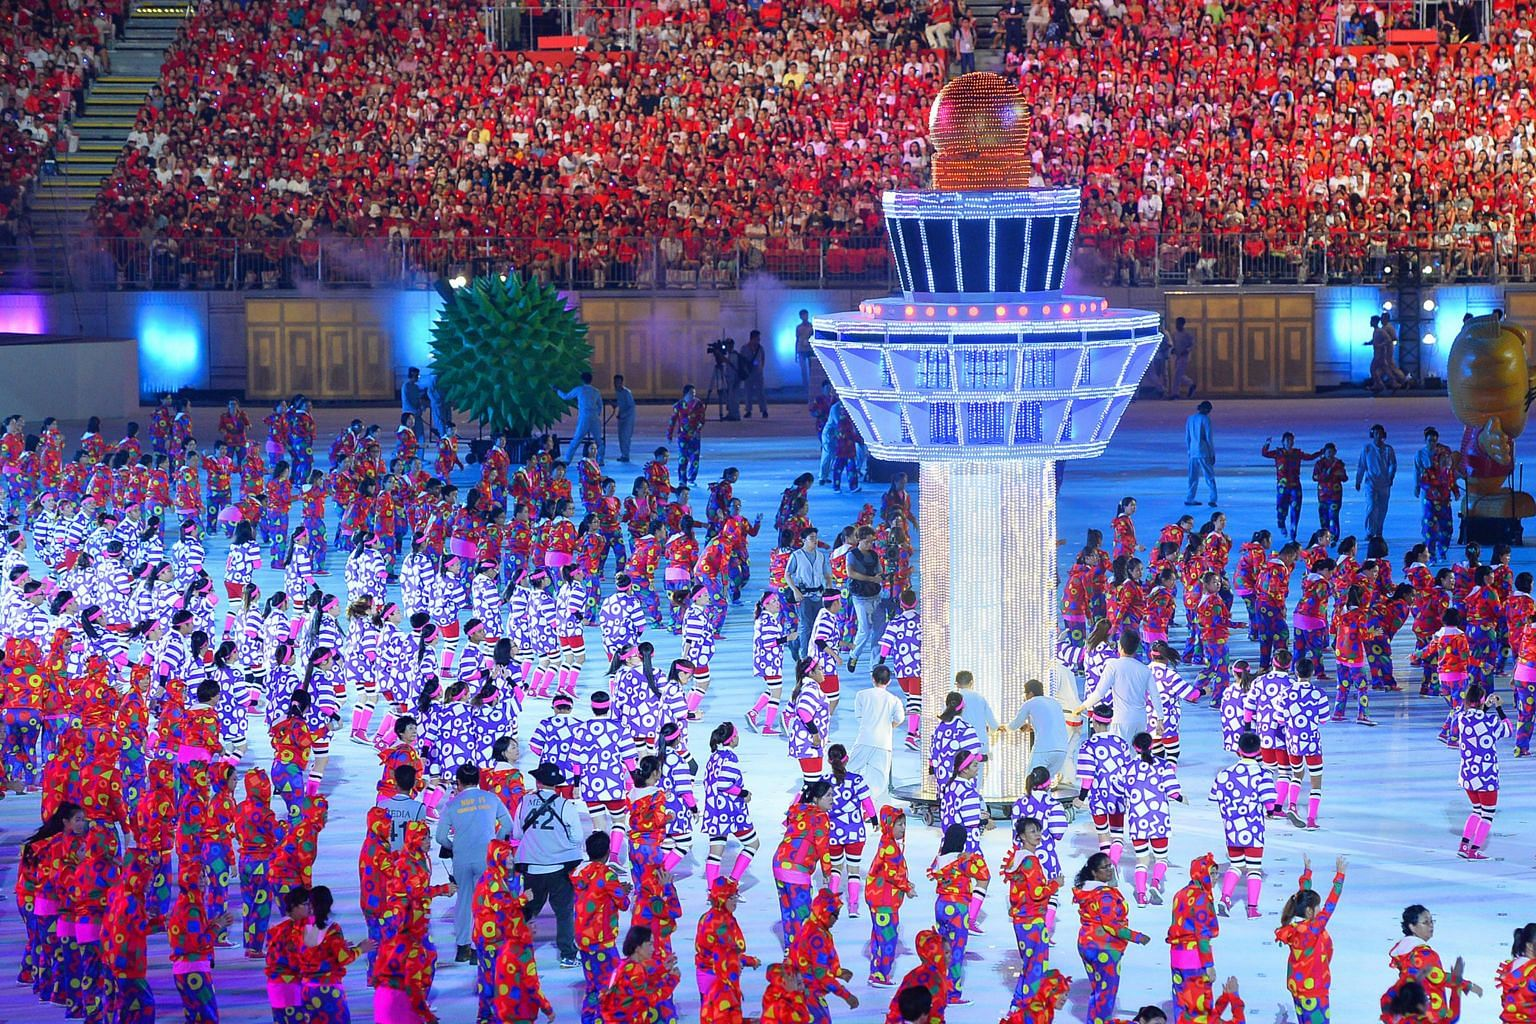 NDP will return to the Padang in 2019 as Singapore commemorates